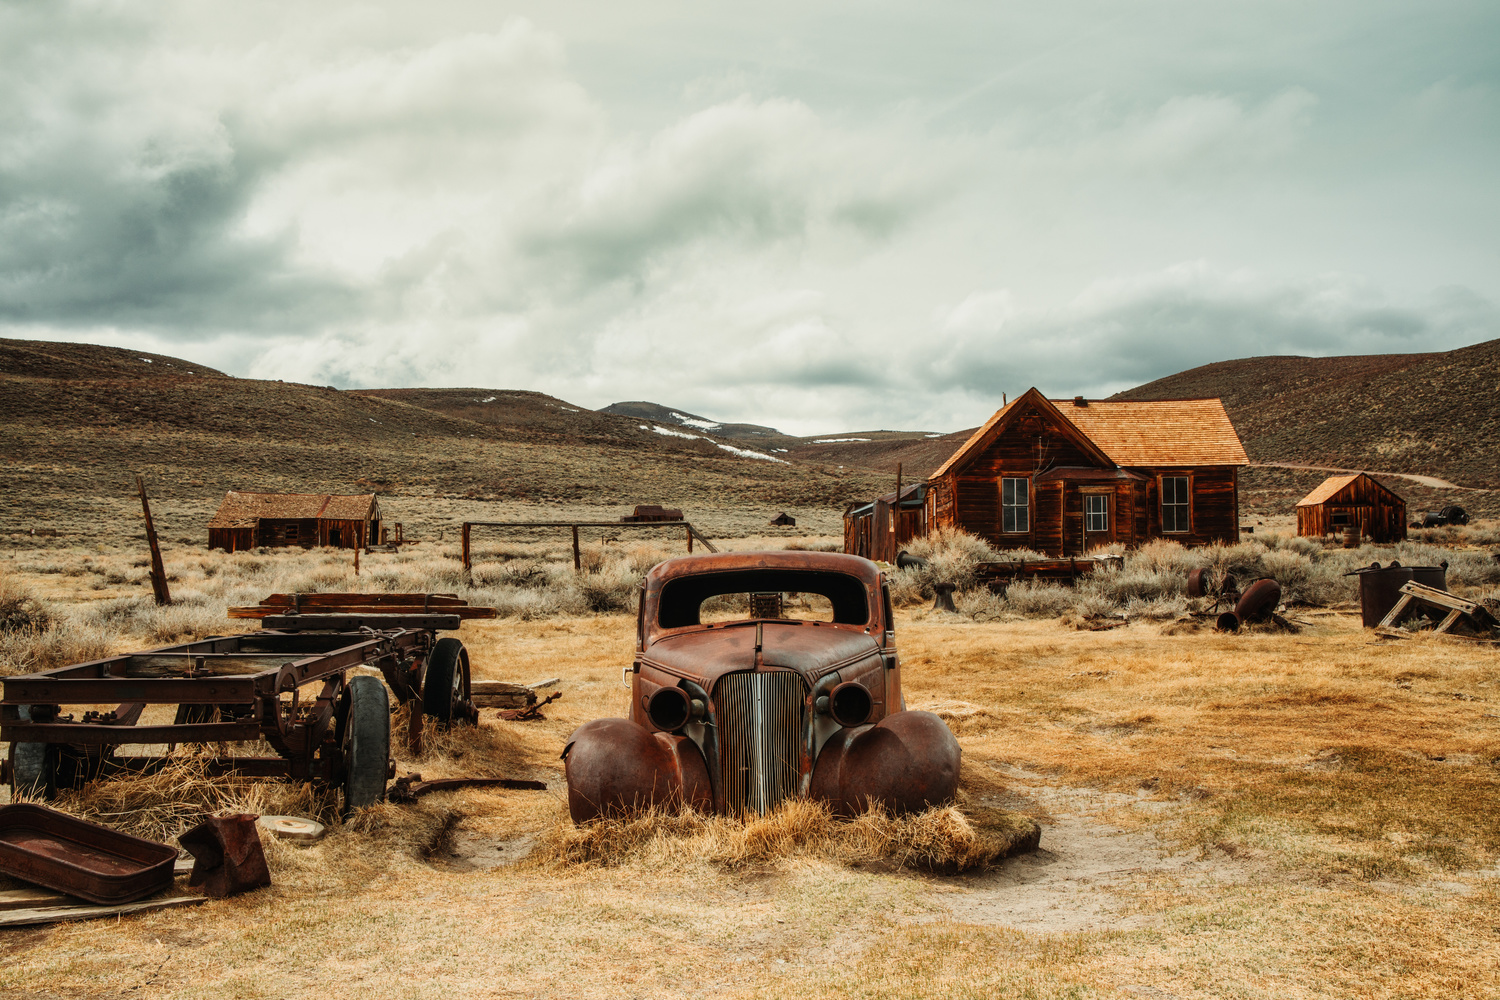 1937 Chevy at Bodie ghost town . by Florian Mauduit